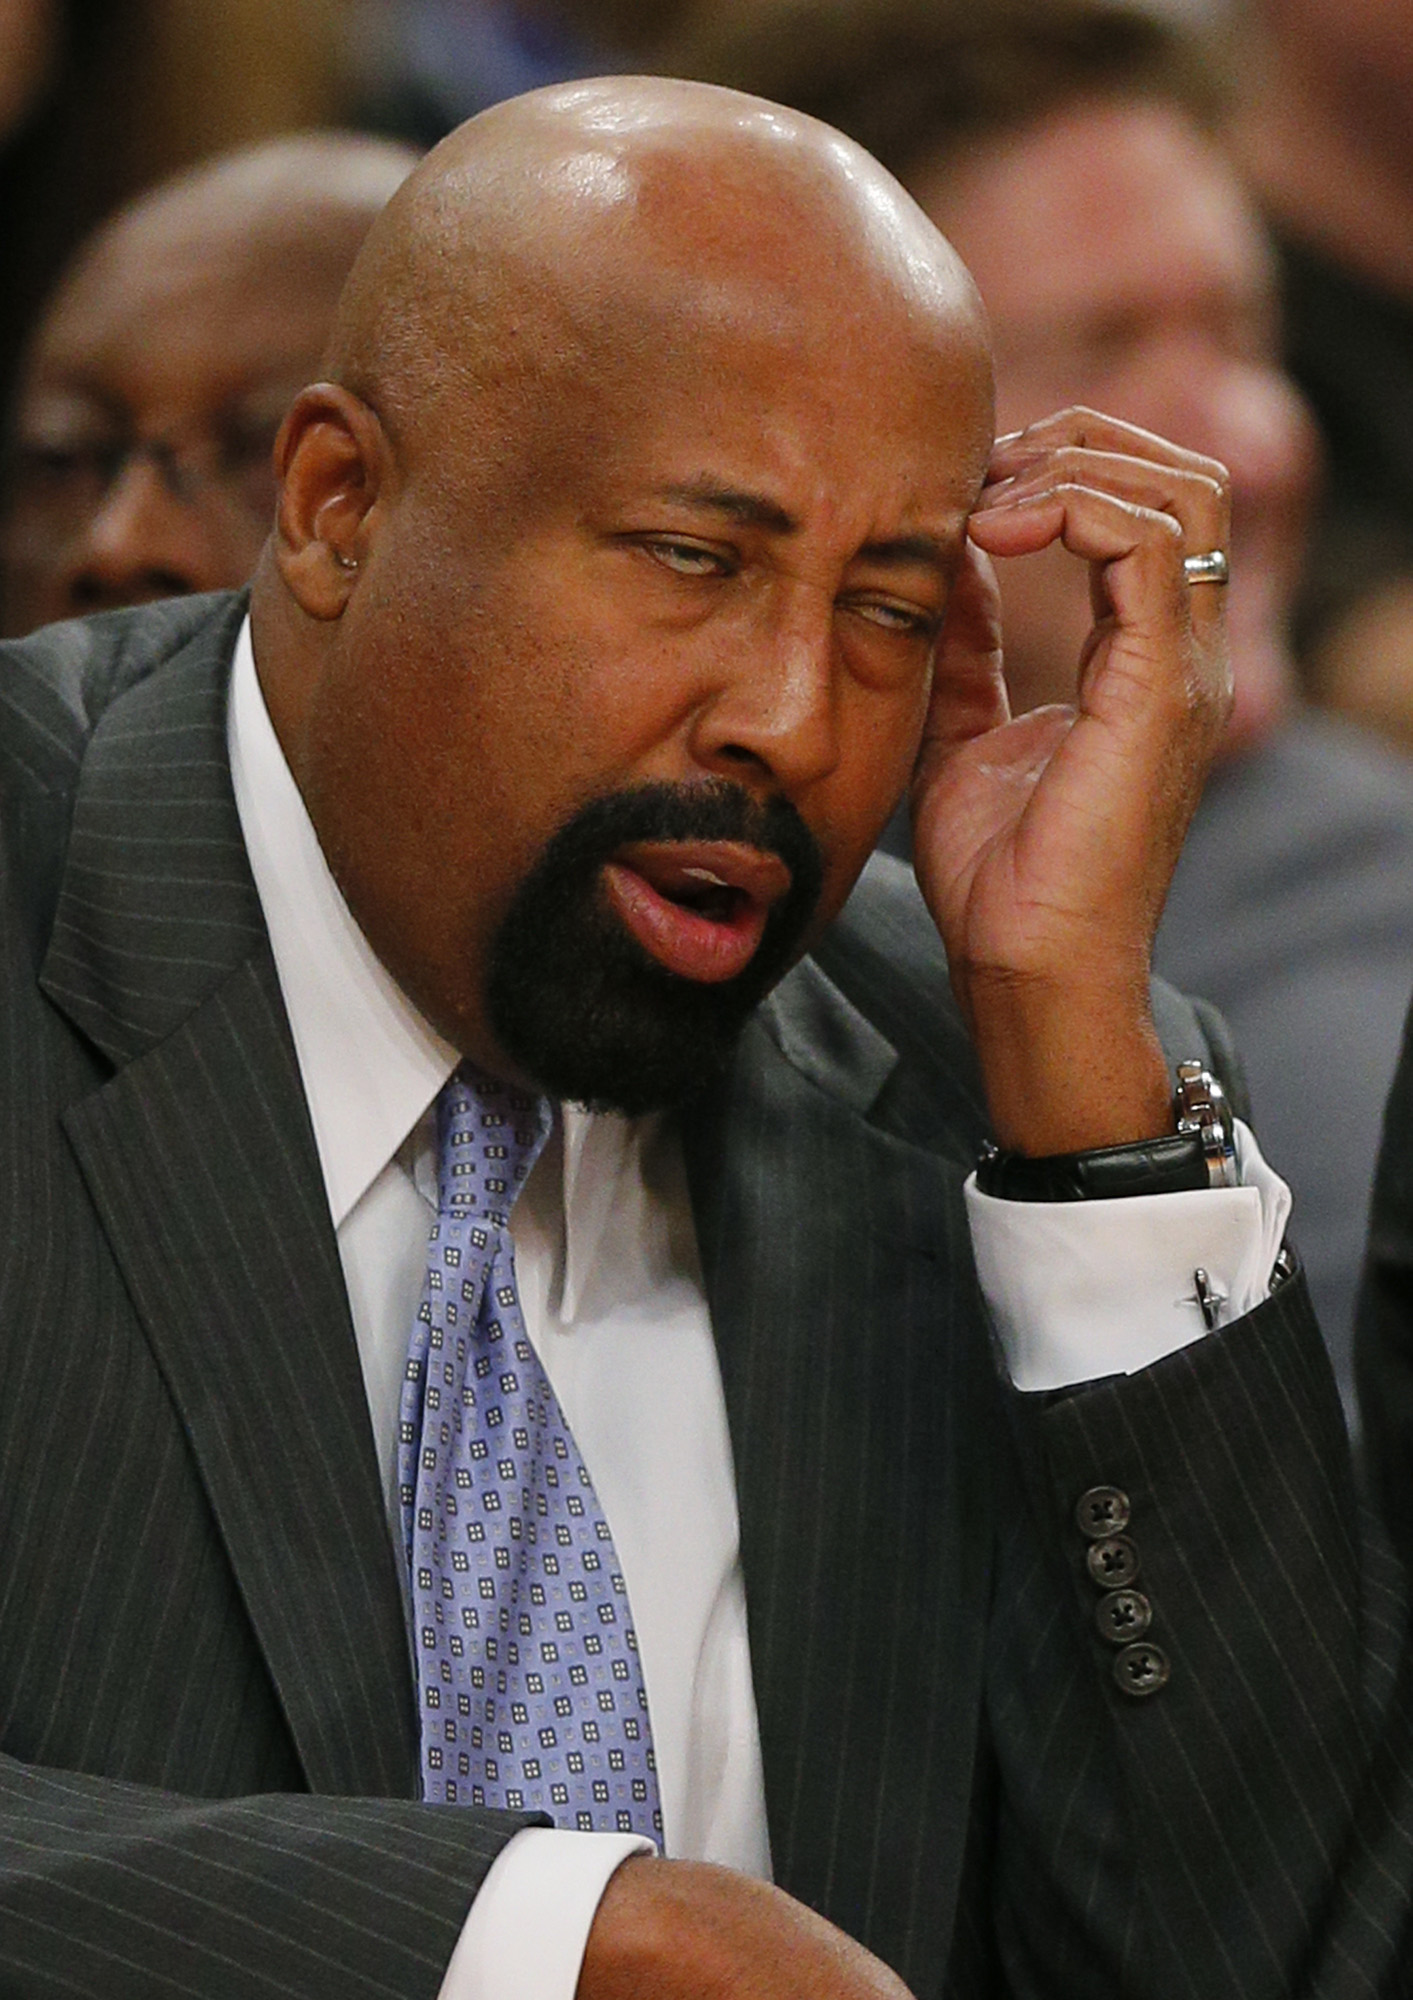 Baffling Infuriating Mike Woodson Related Fact The Day